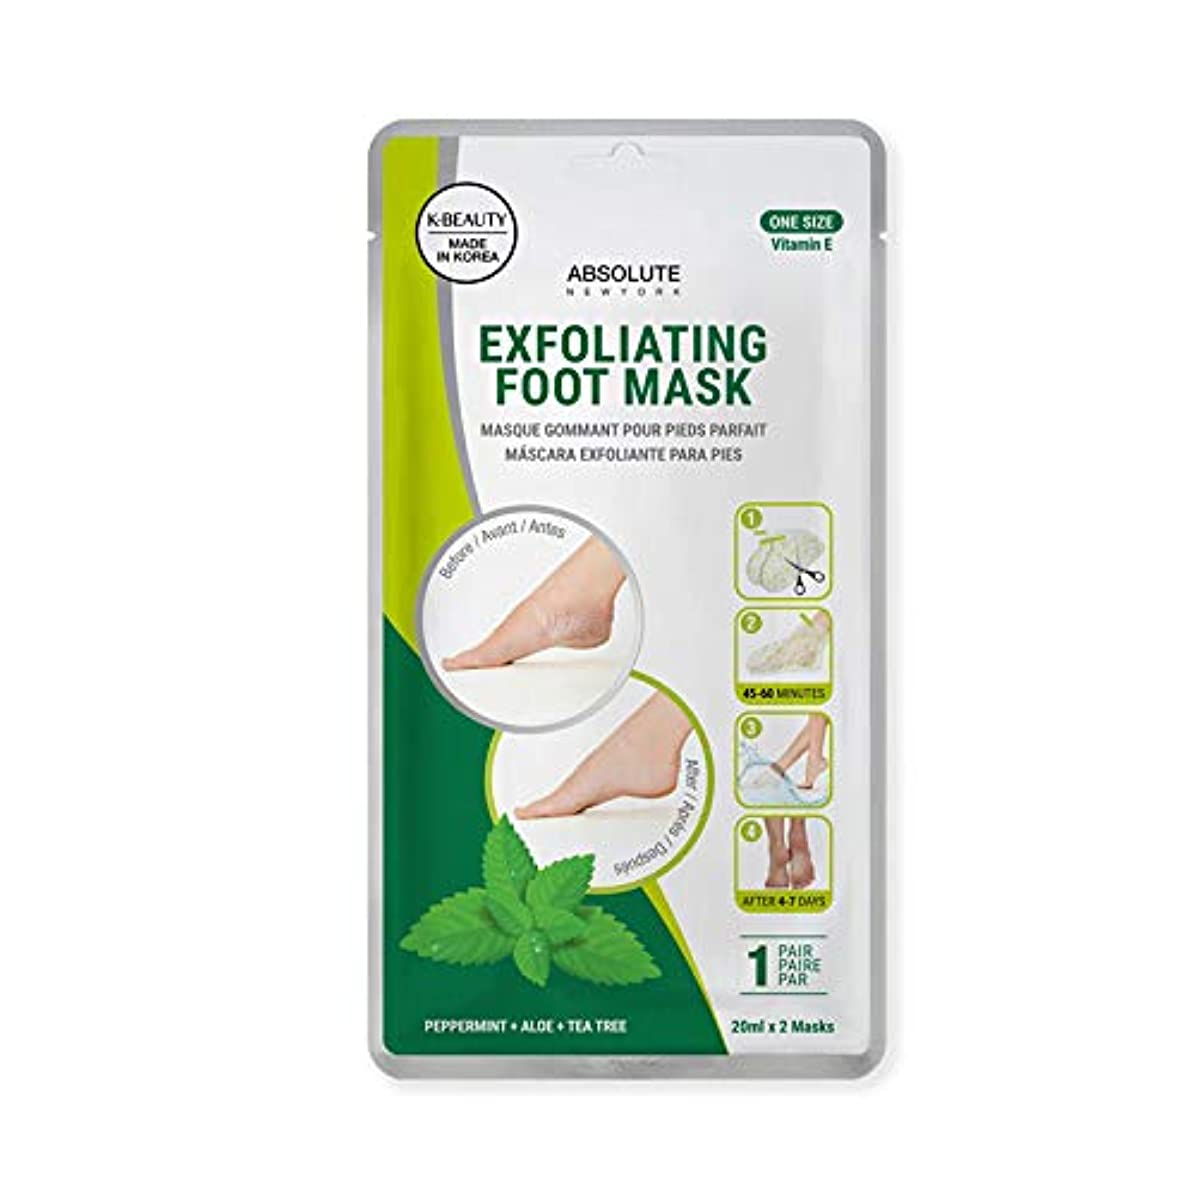 冊子禁止する許可する(6 Pack) ABSOLUTE Exfoliating Foot Mask - Peppermint + Aloe + Tea Tree (並行輸入品)